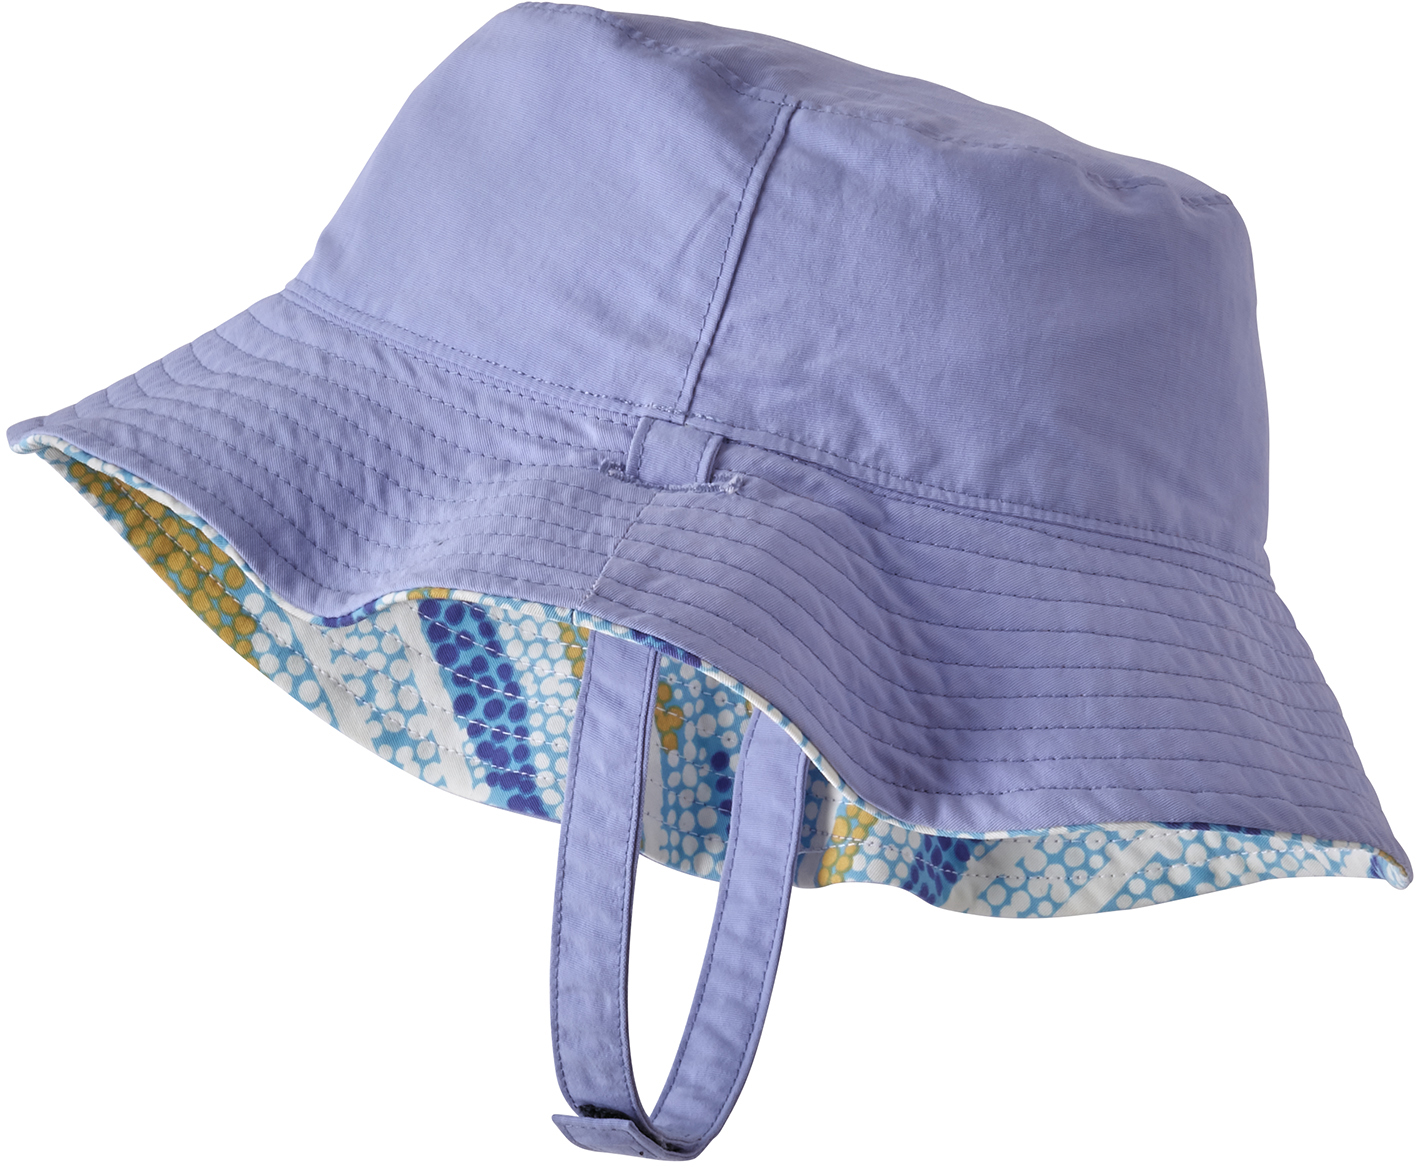 4e137013 Patagonia Baby Sun Bucket Hat - Infants to Children | MEC